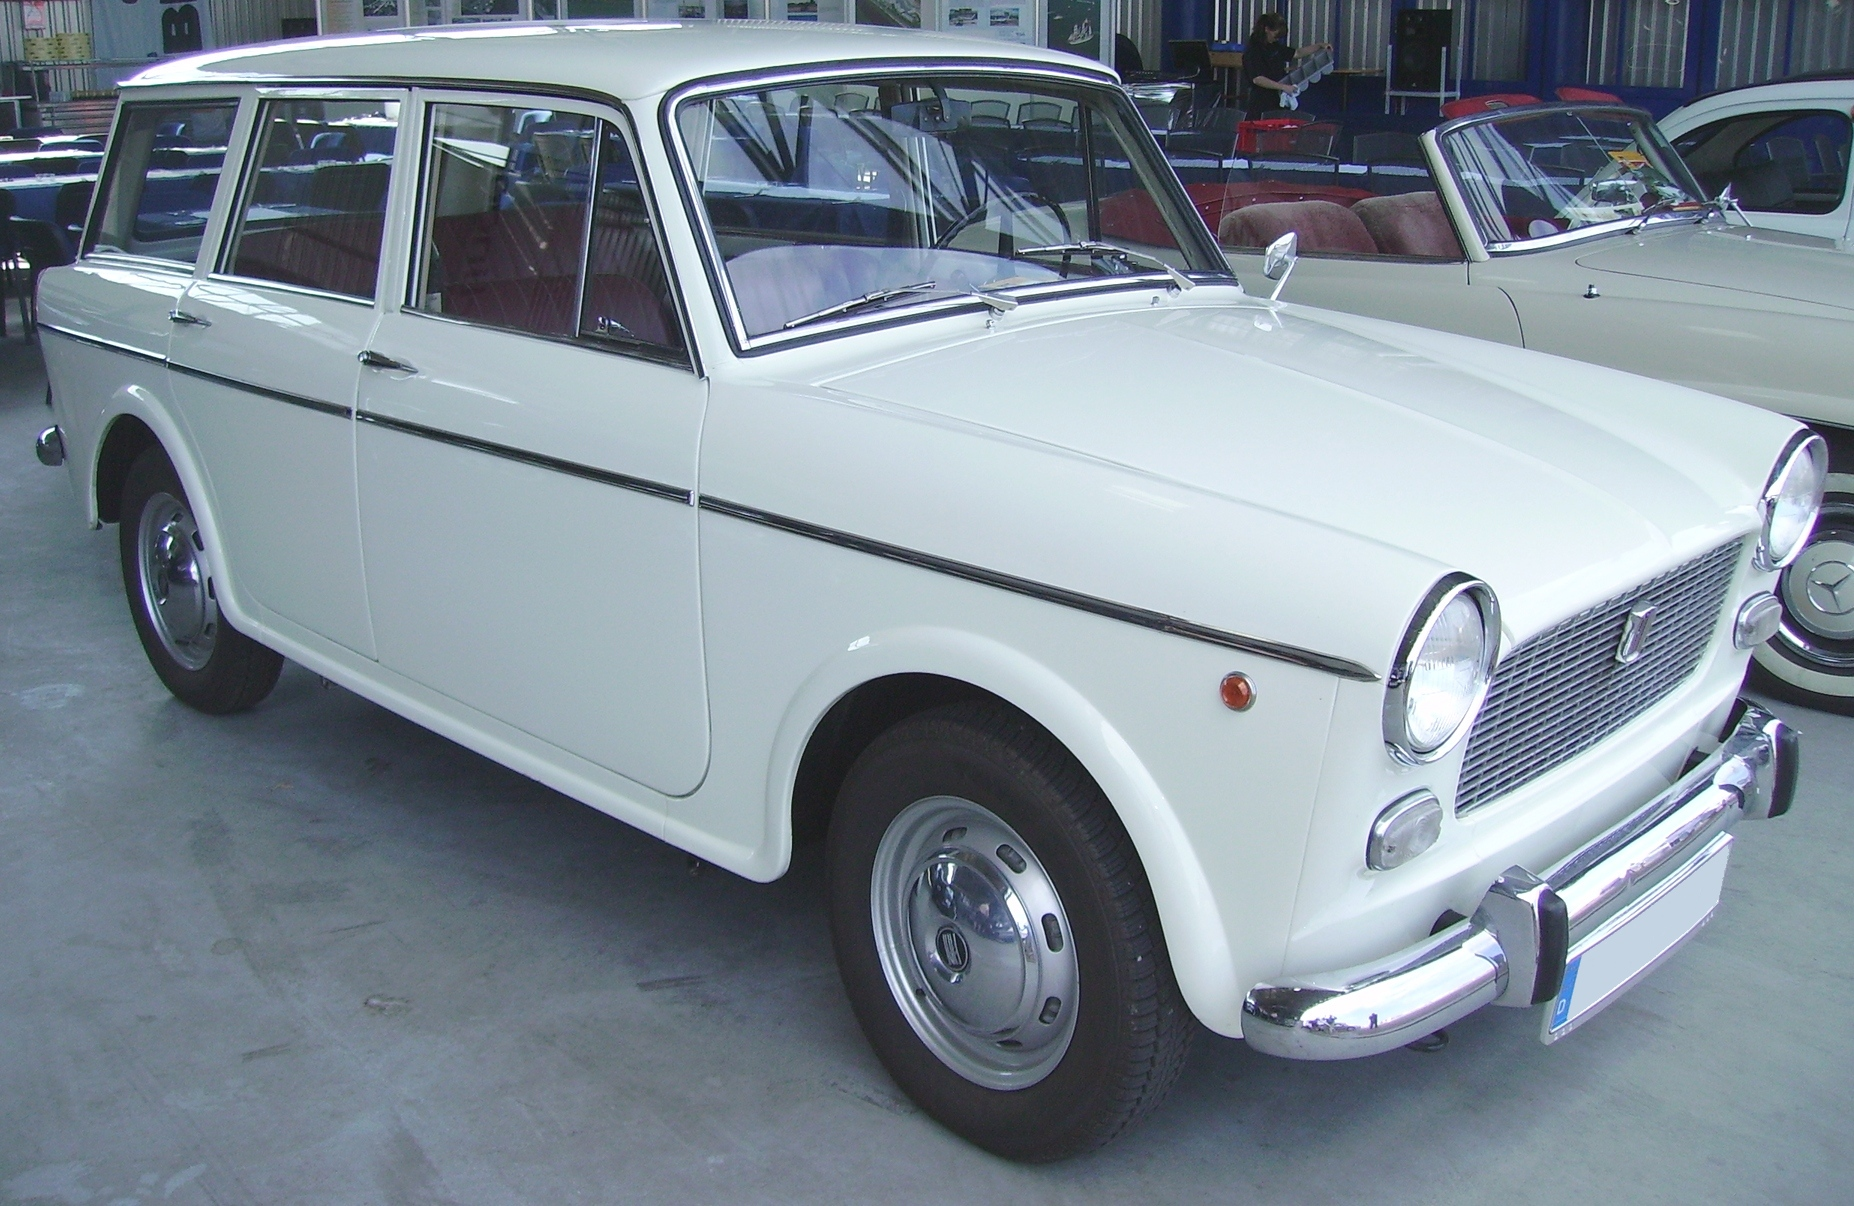 Fiat 1100D estate wagon